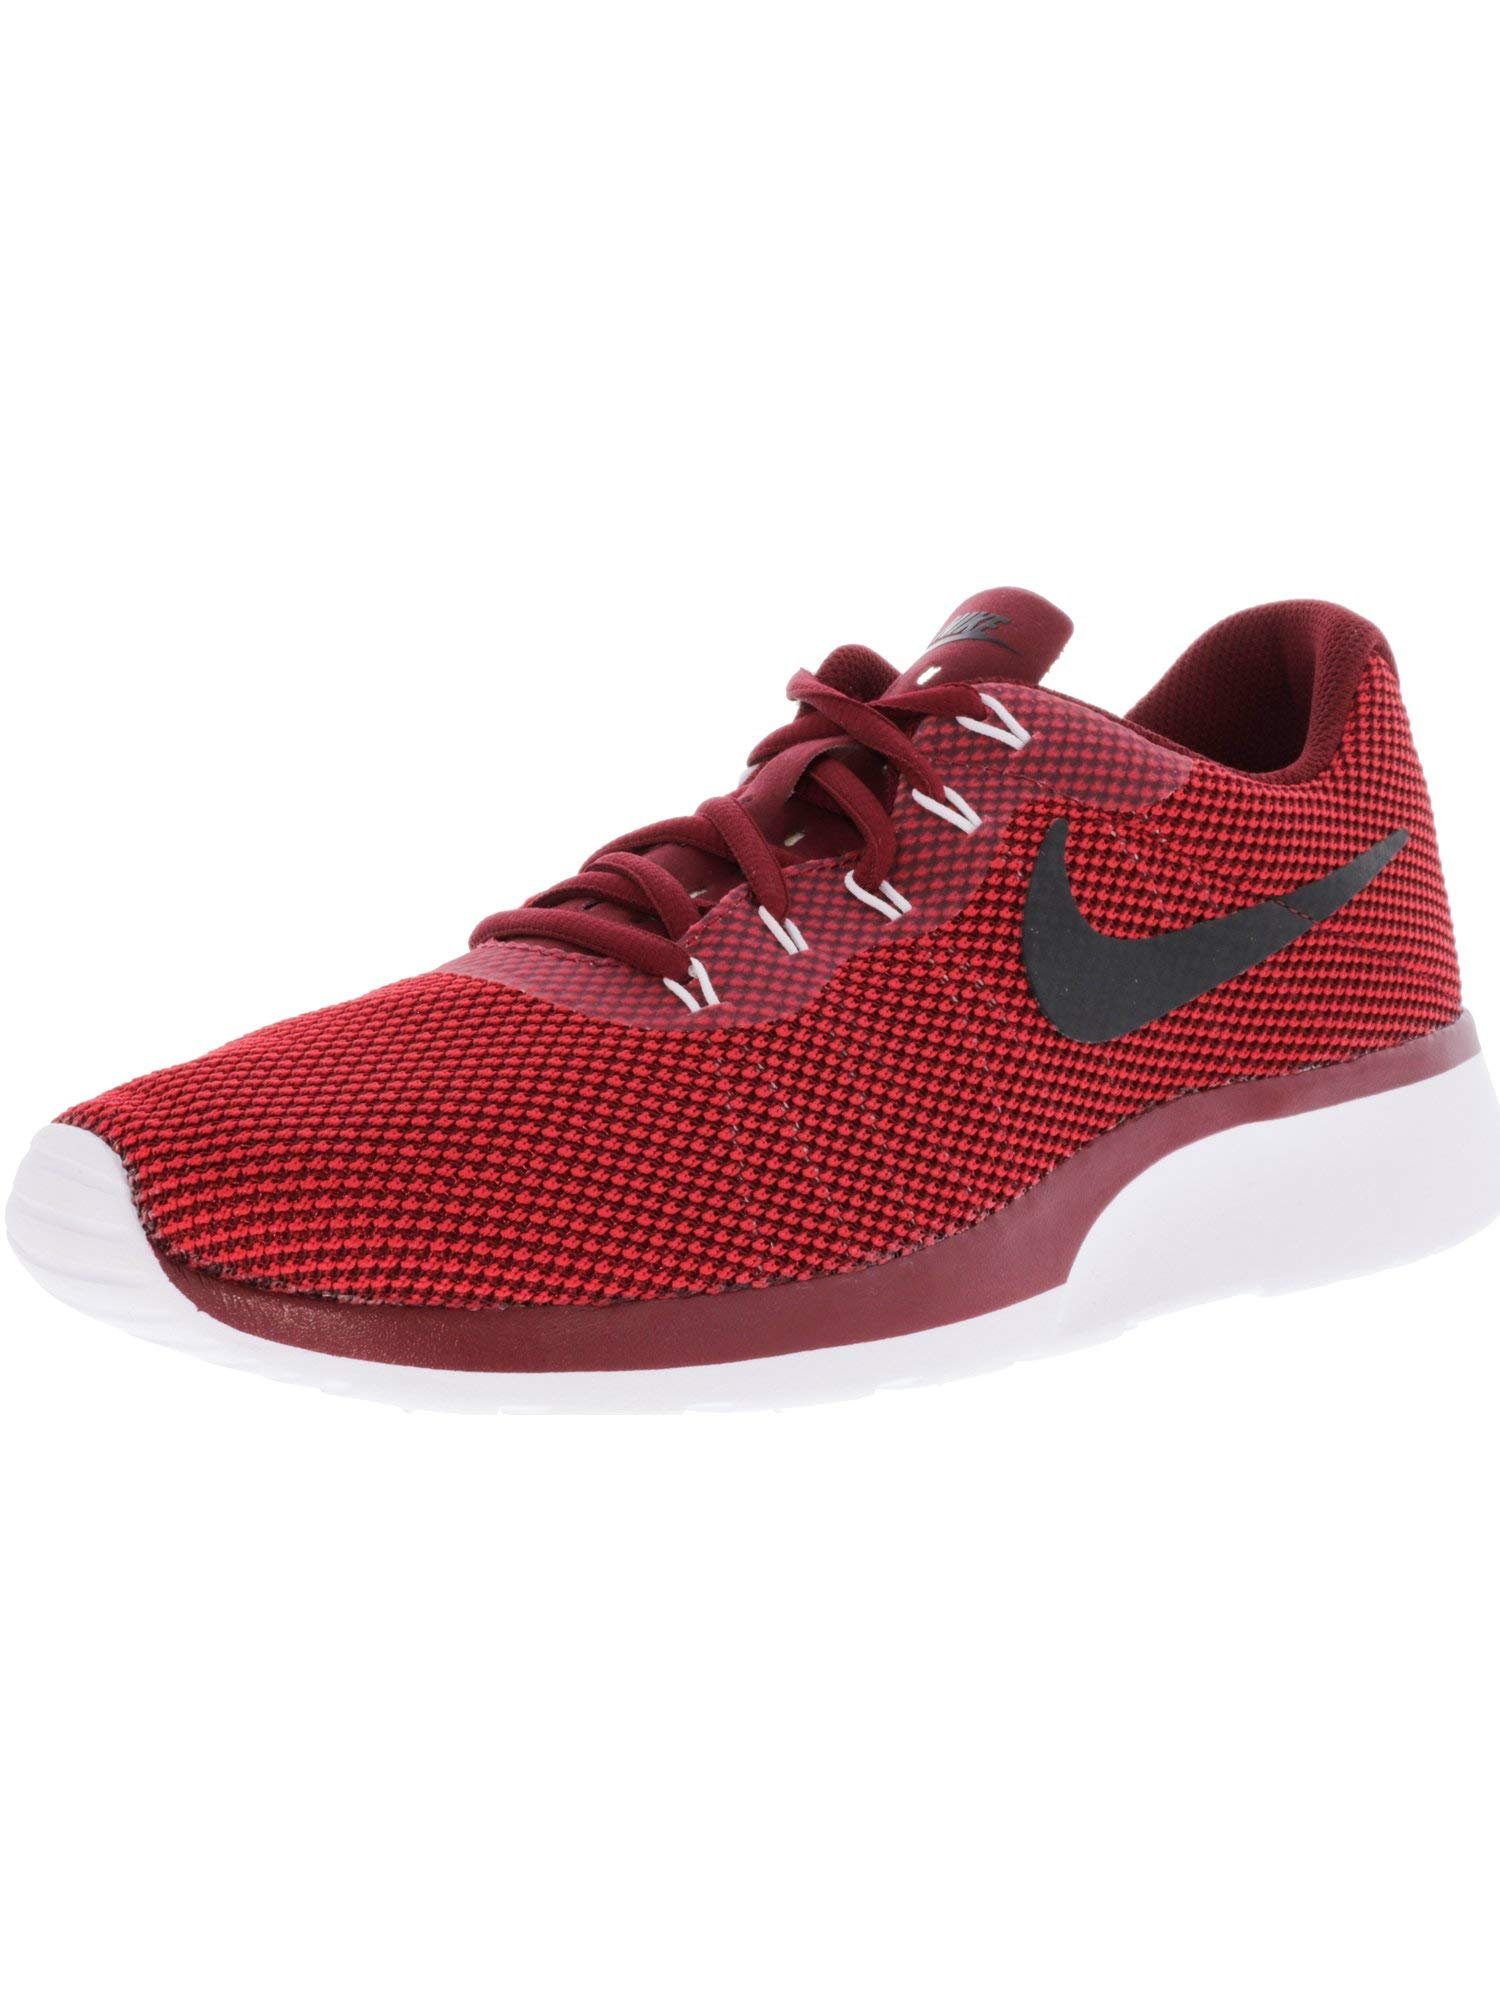 fbee3cd8f58ca Galleon - Nike Mens 812654 Fabric Low Top Lace Up Running Sneaker ...